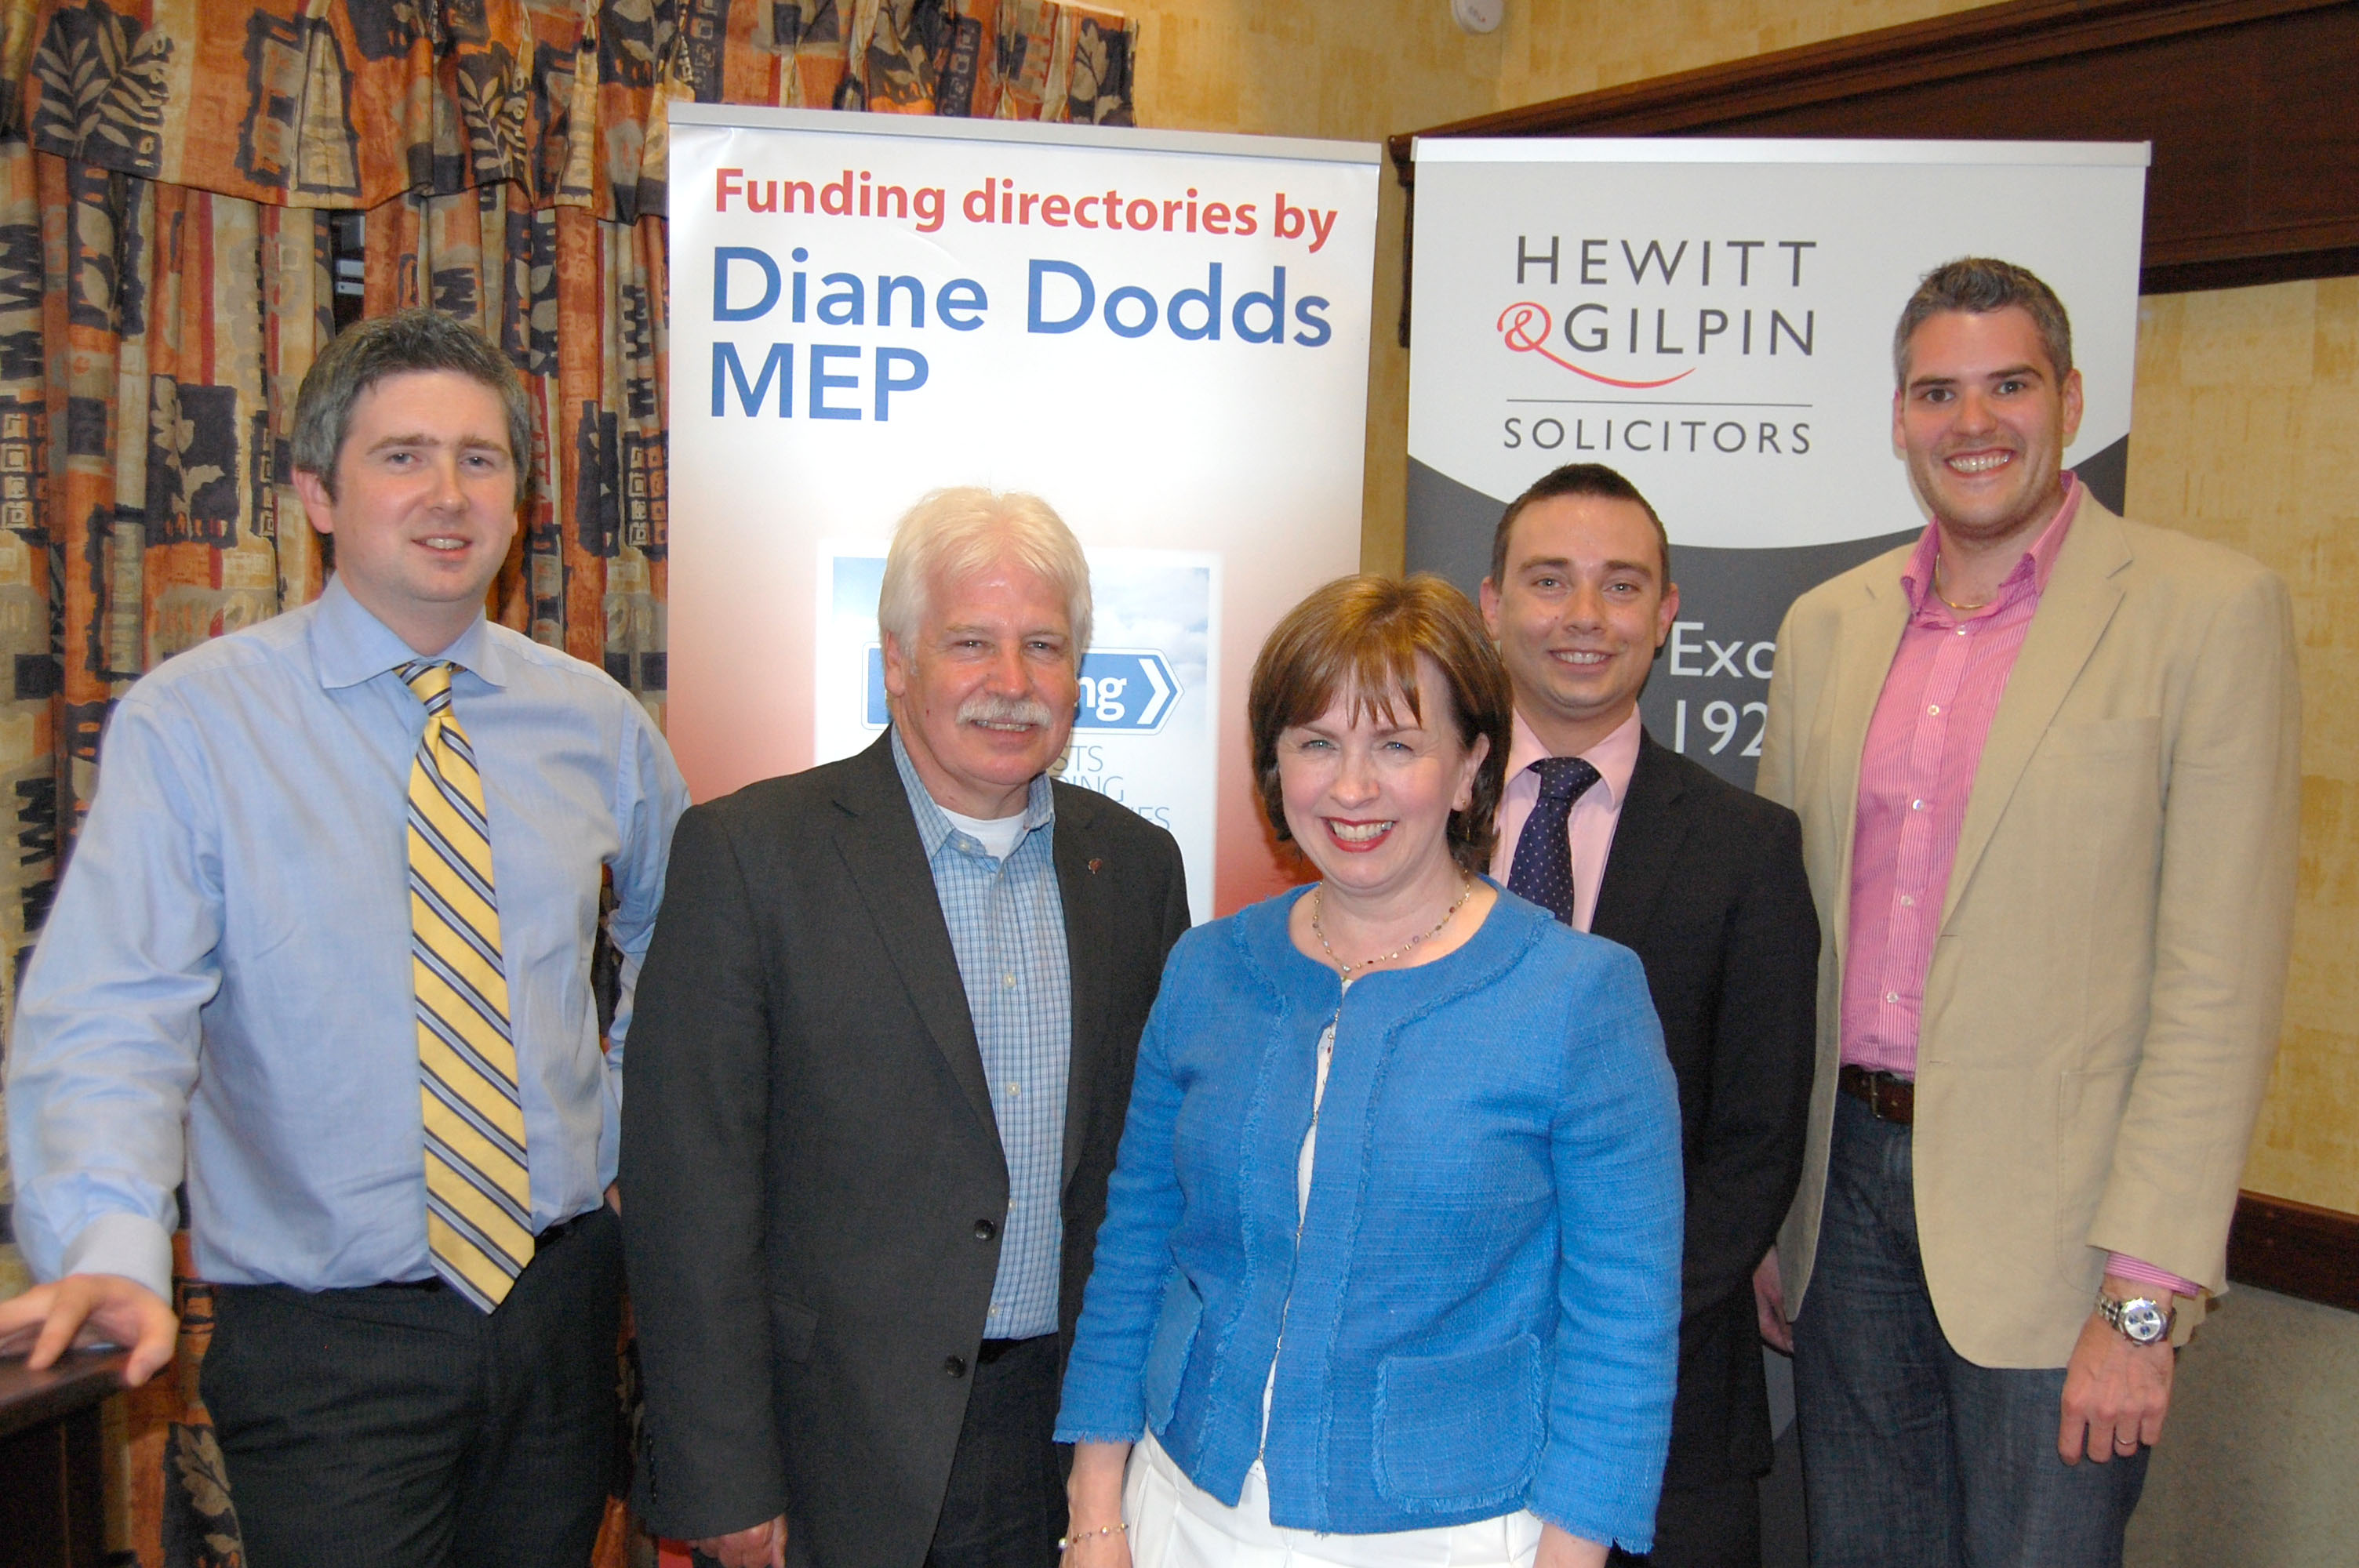 Hewitt & Gilpin Host Workshop on Charities Law and Funding Opportunities